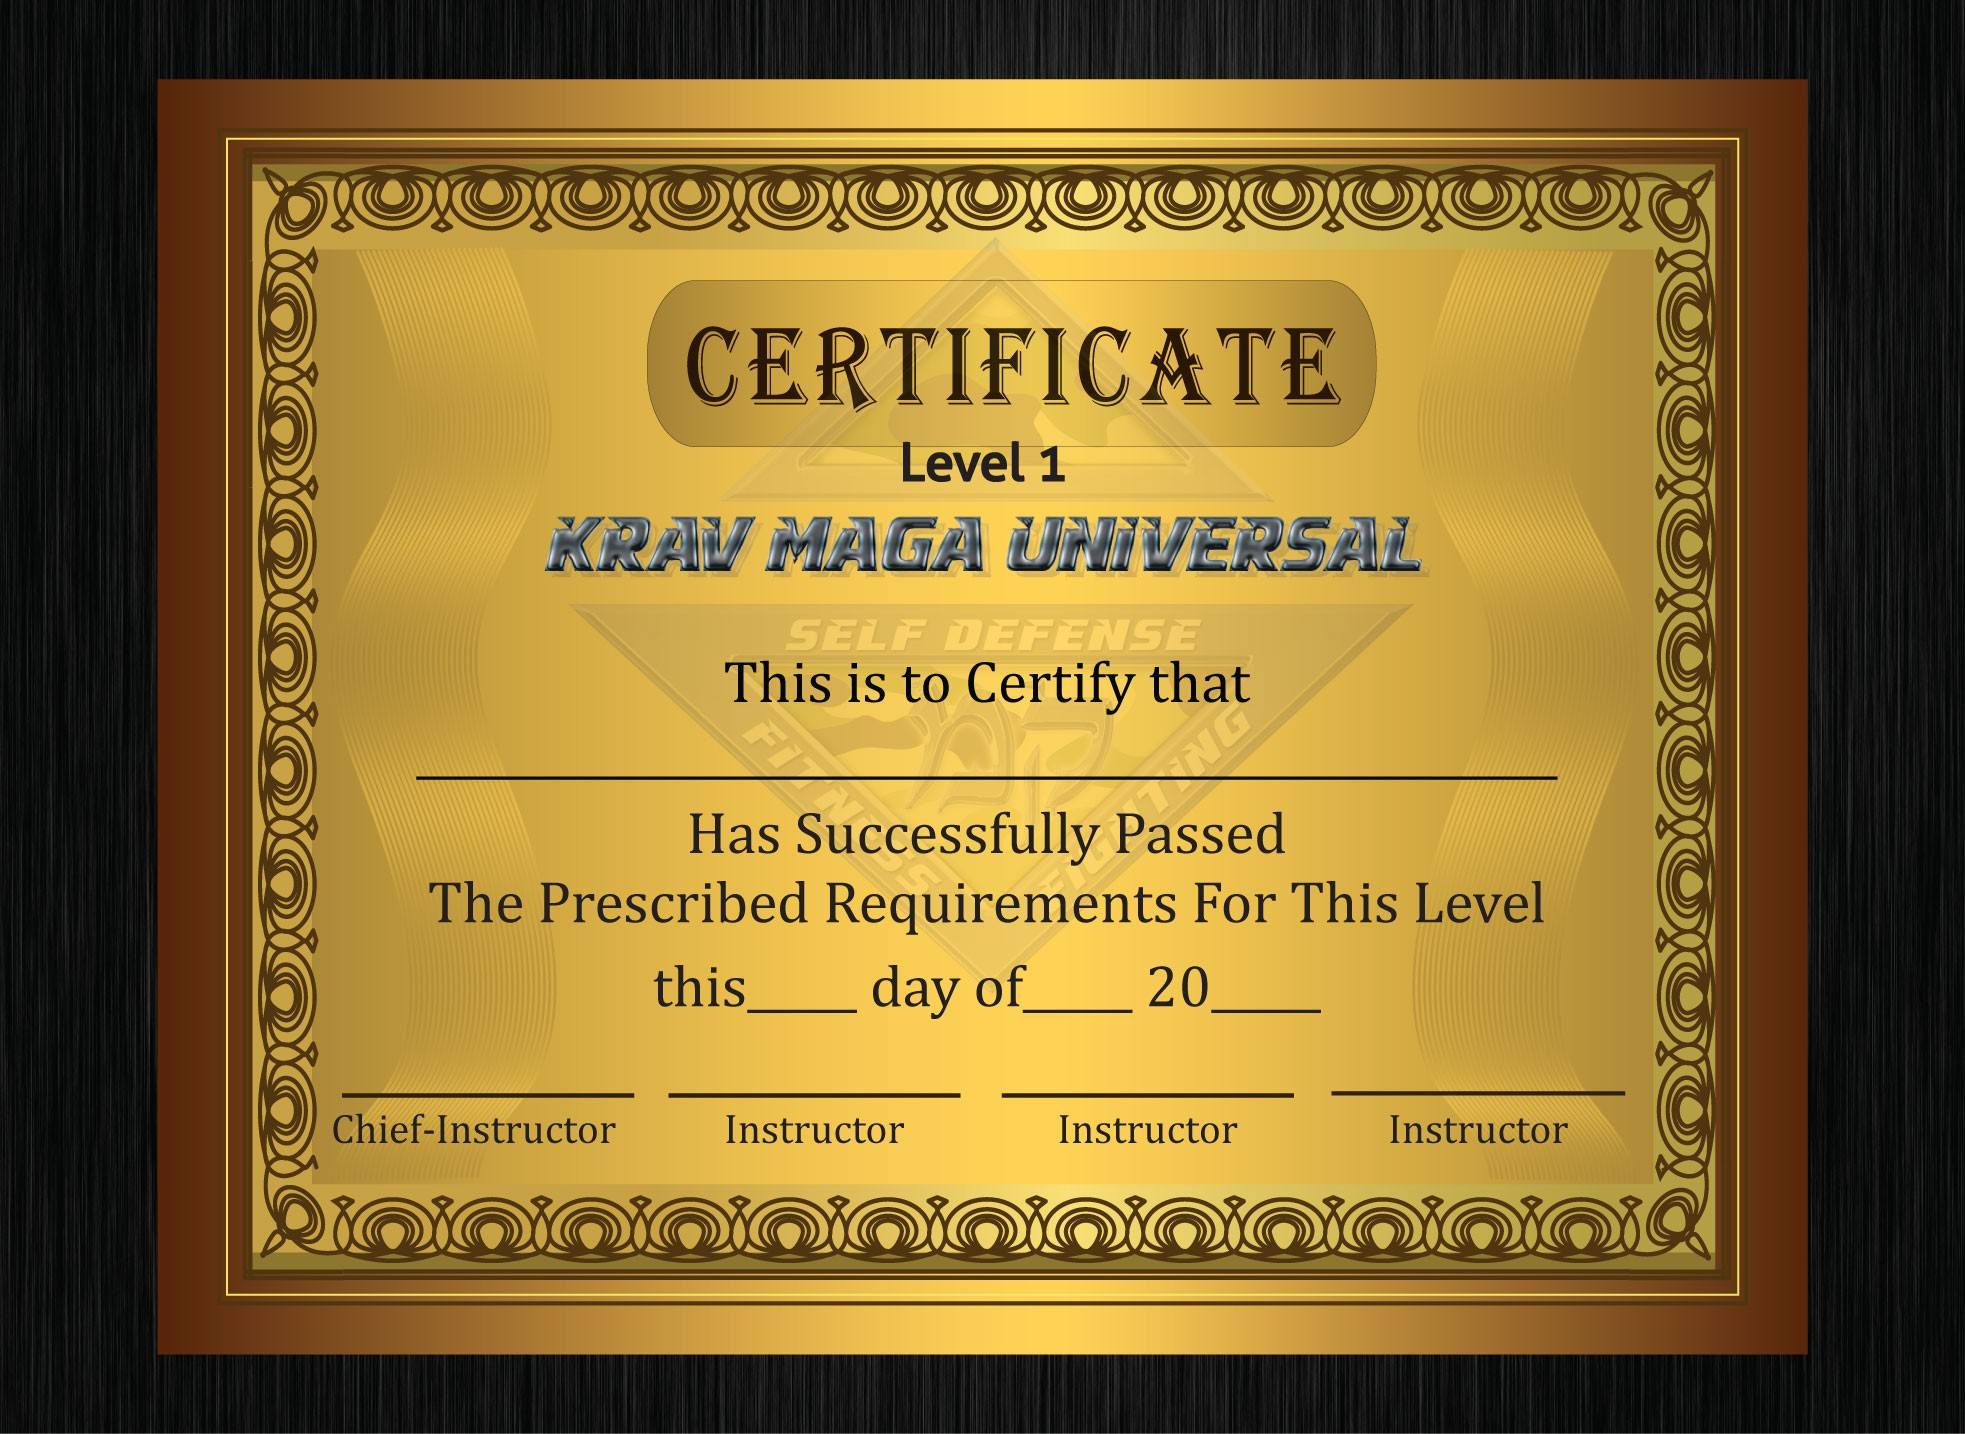 reliable certificate design company affordable certificate designers